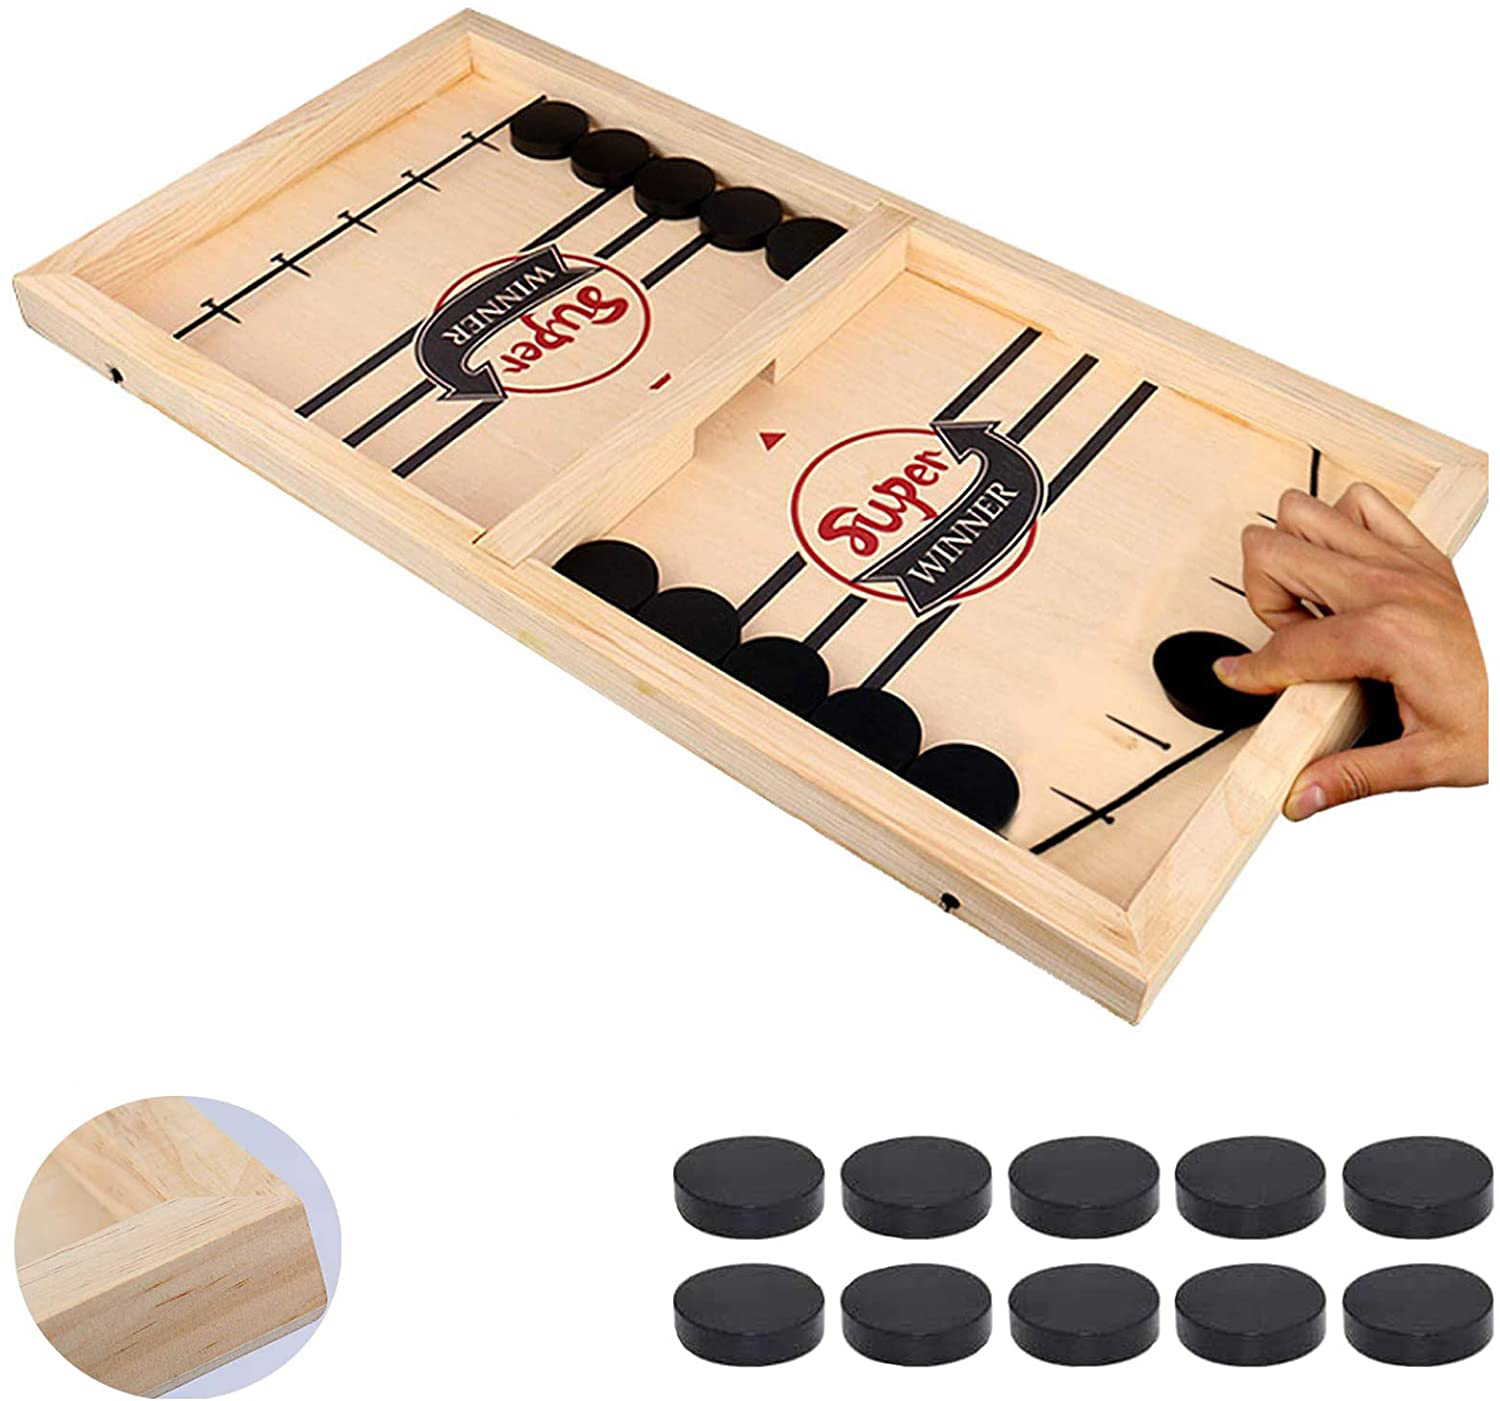 Fast Sling Puck Game Hockey Game Tablet Board Game Family Fun Games Child Toy CA